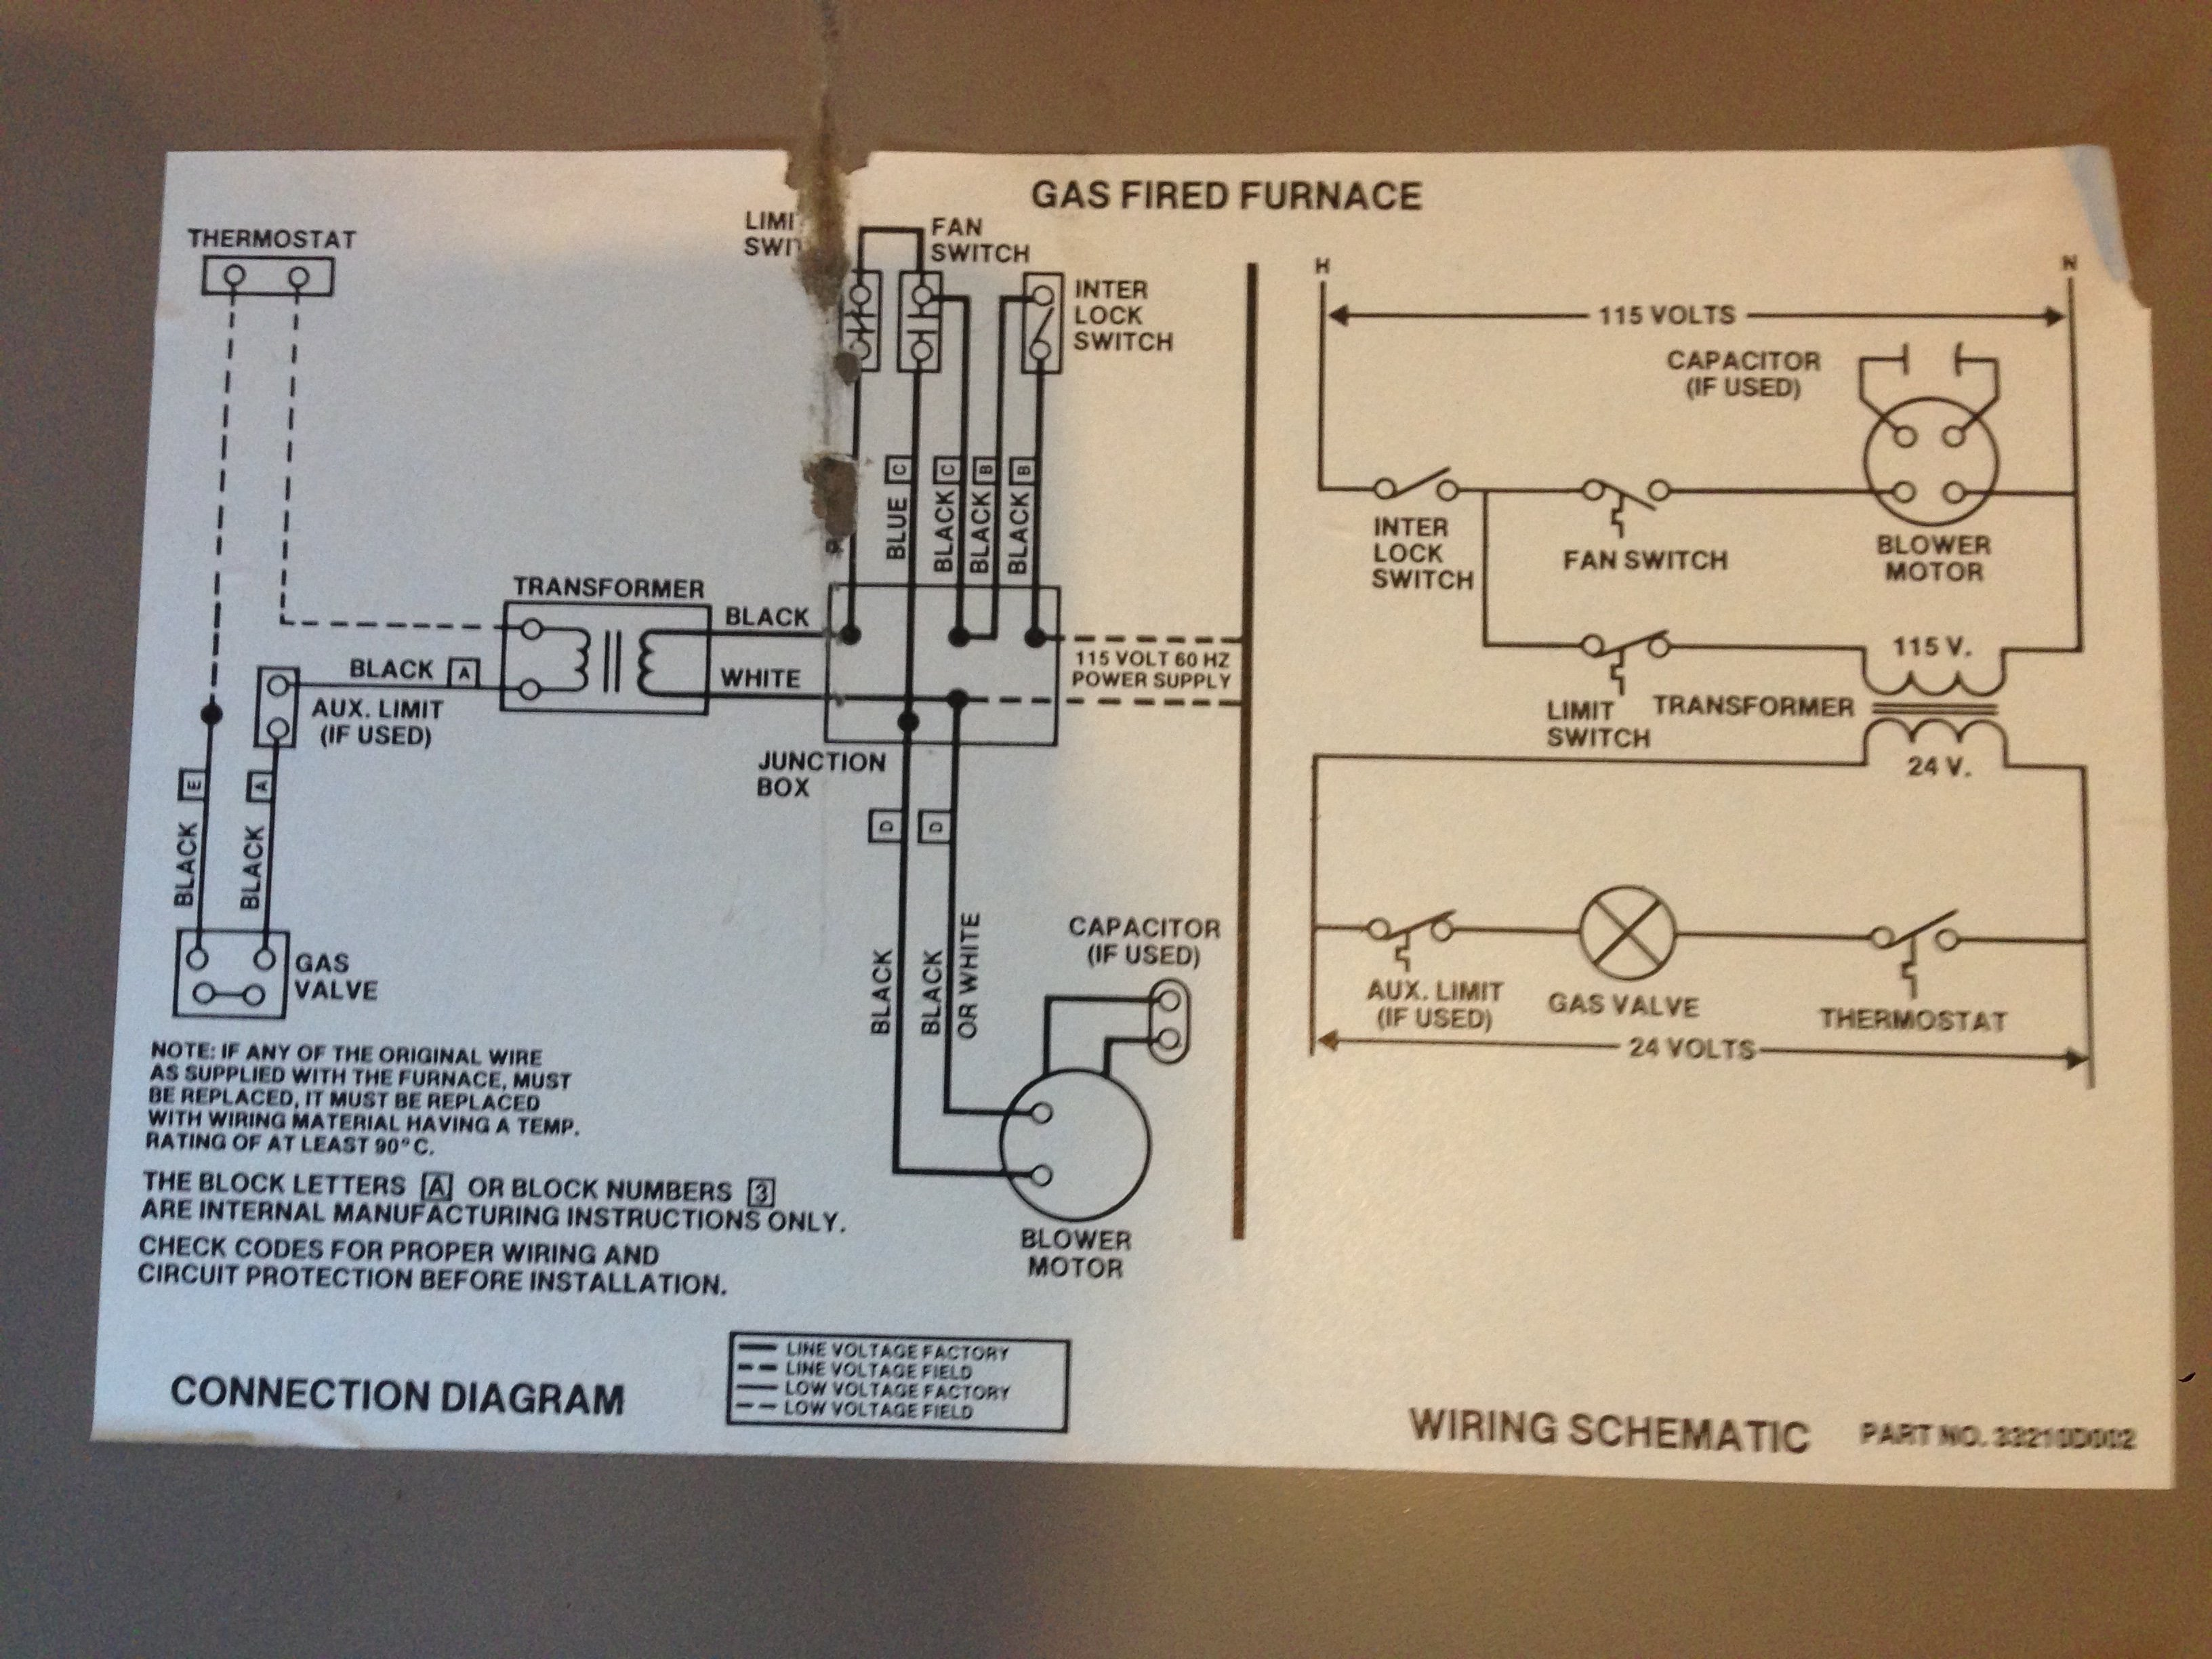 wiring diagram older furnace heater relay i'm looking for the wiring instructions for a honeywell ... #1